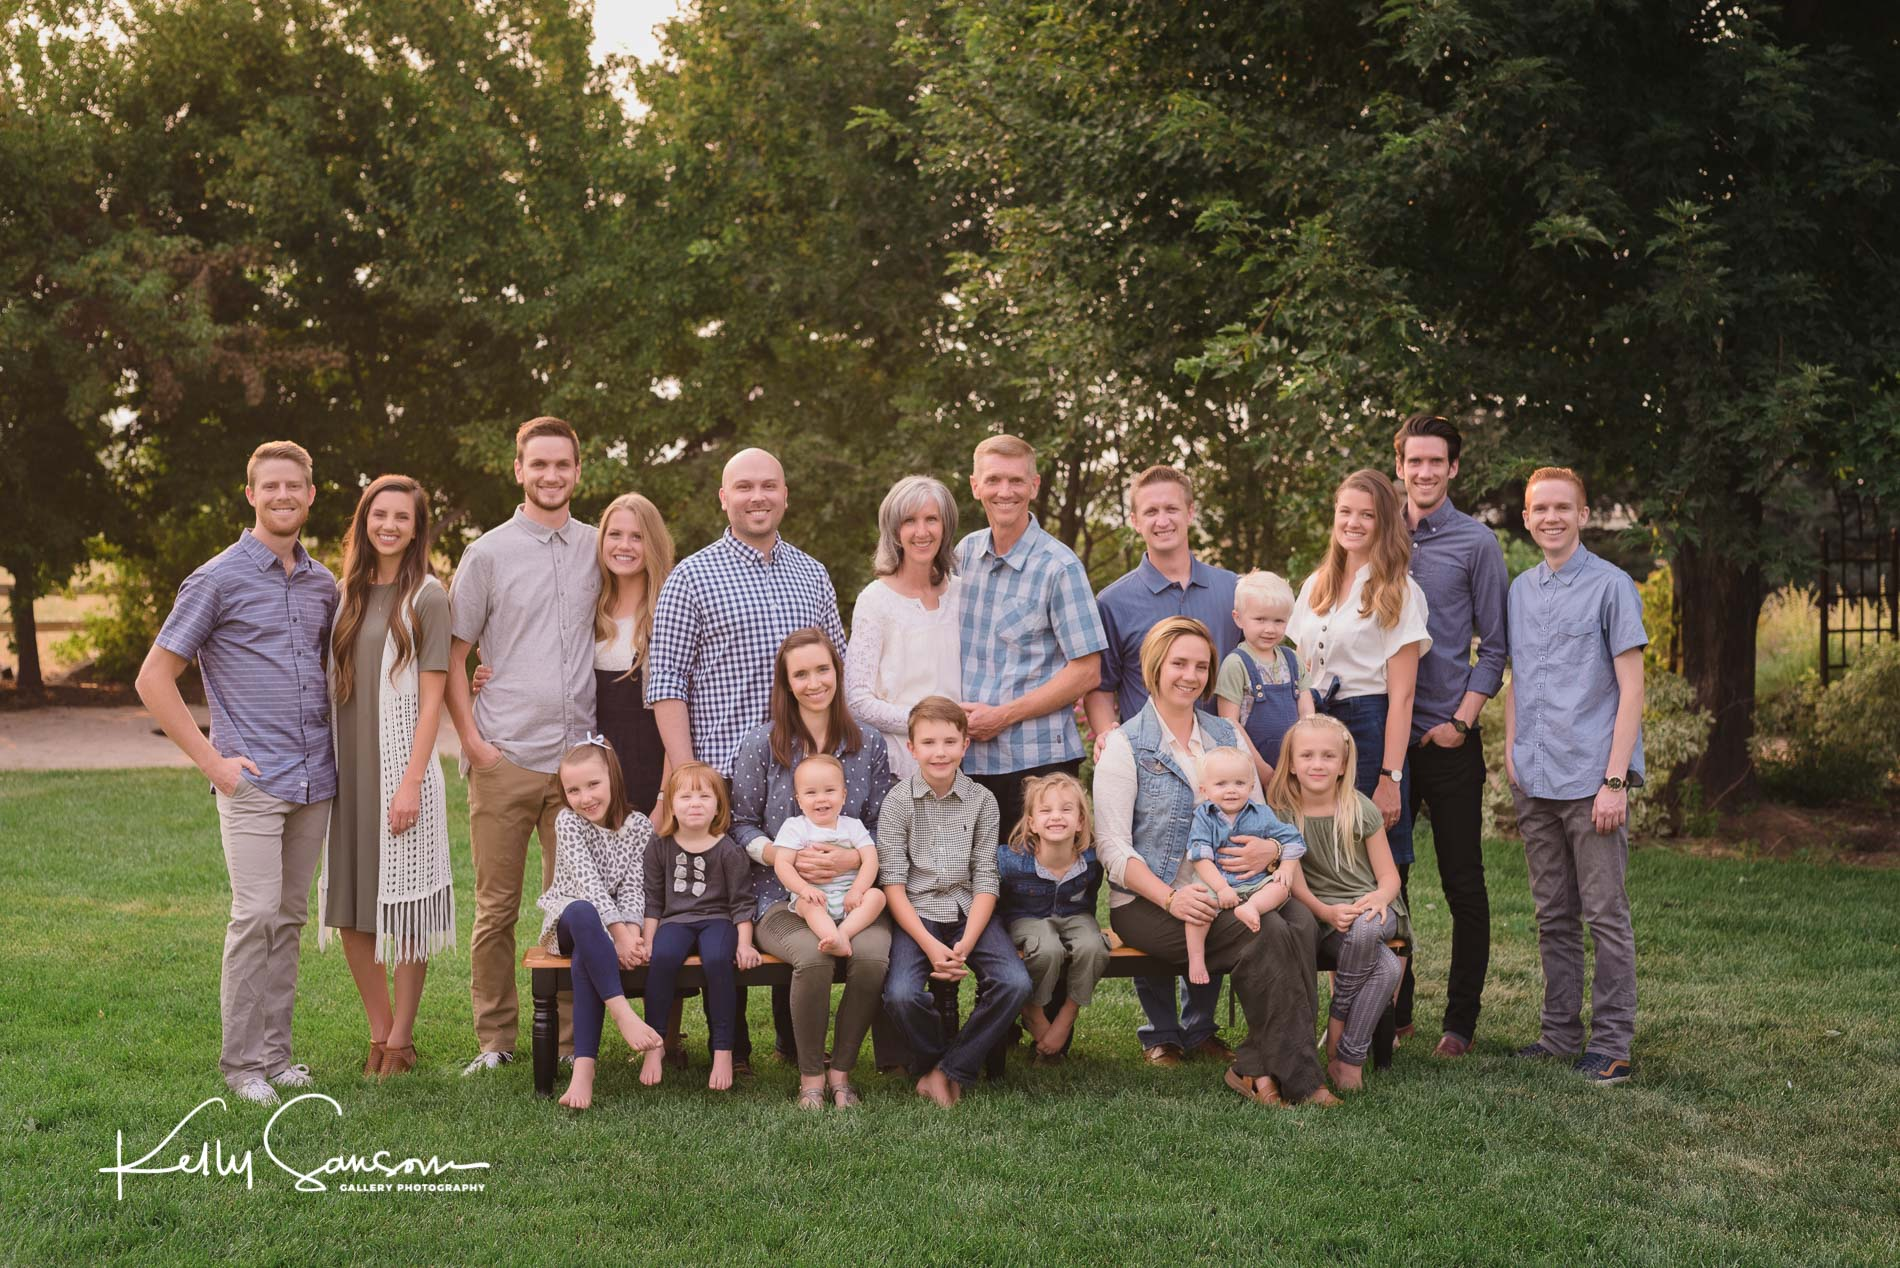 Large family group looking at camera with trees behind on grass for Ogden family photography.